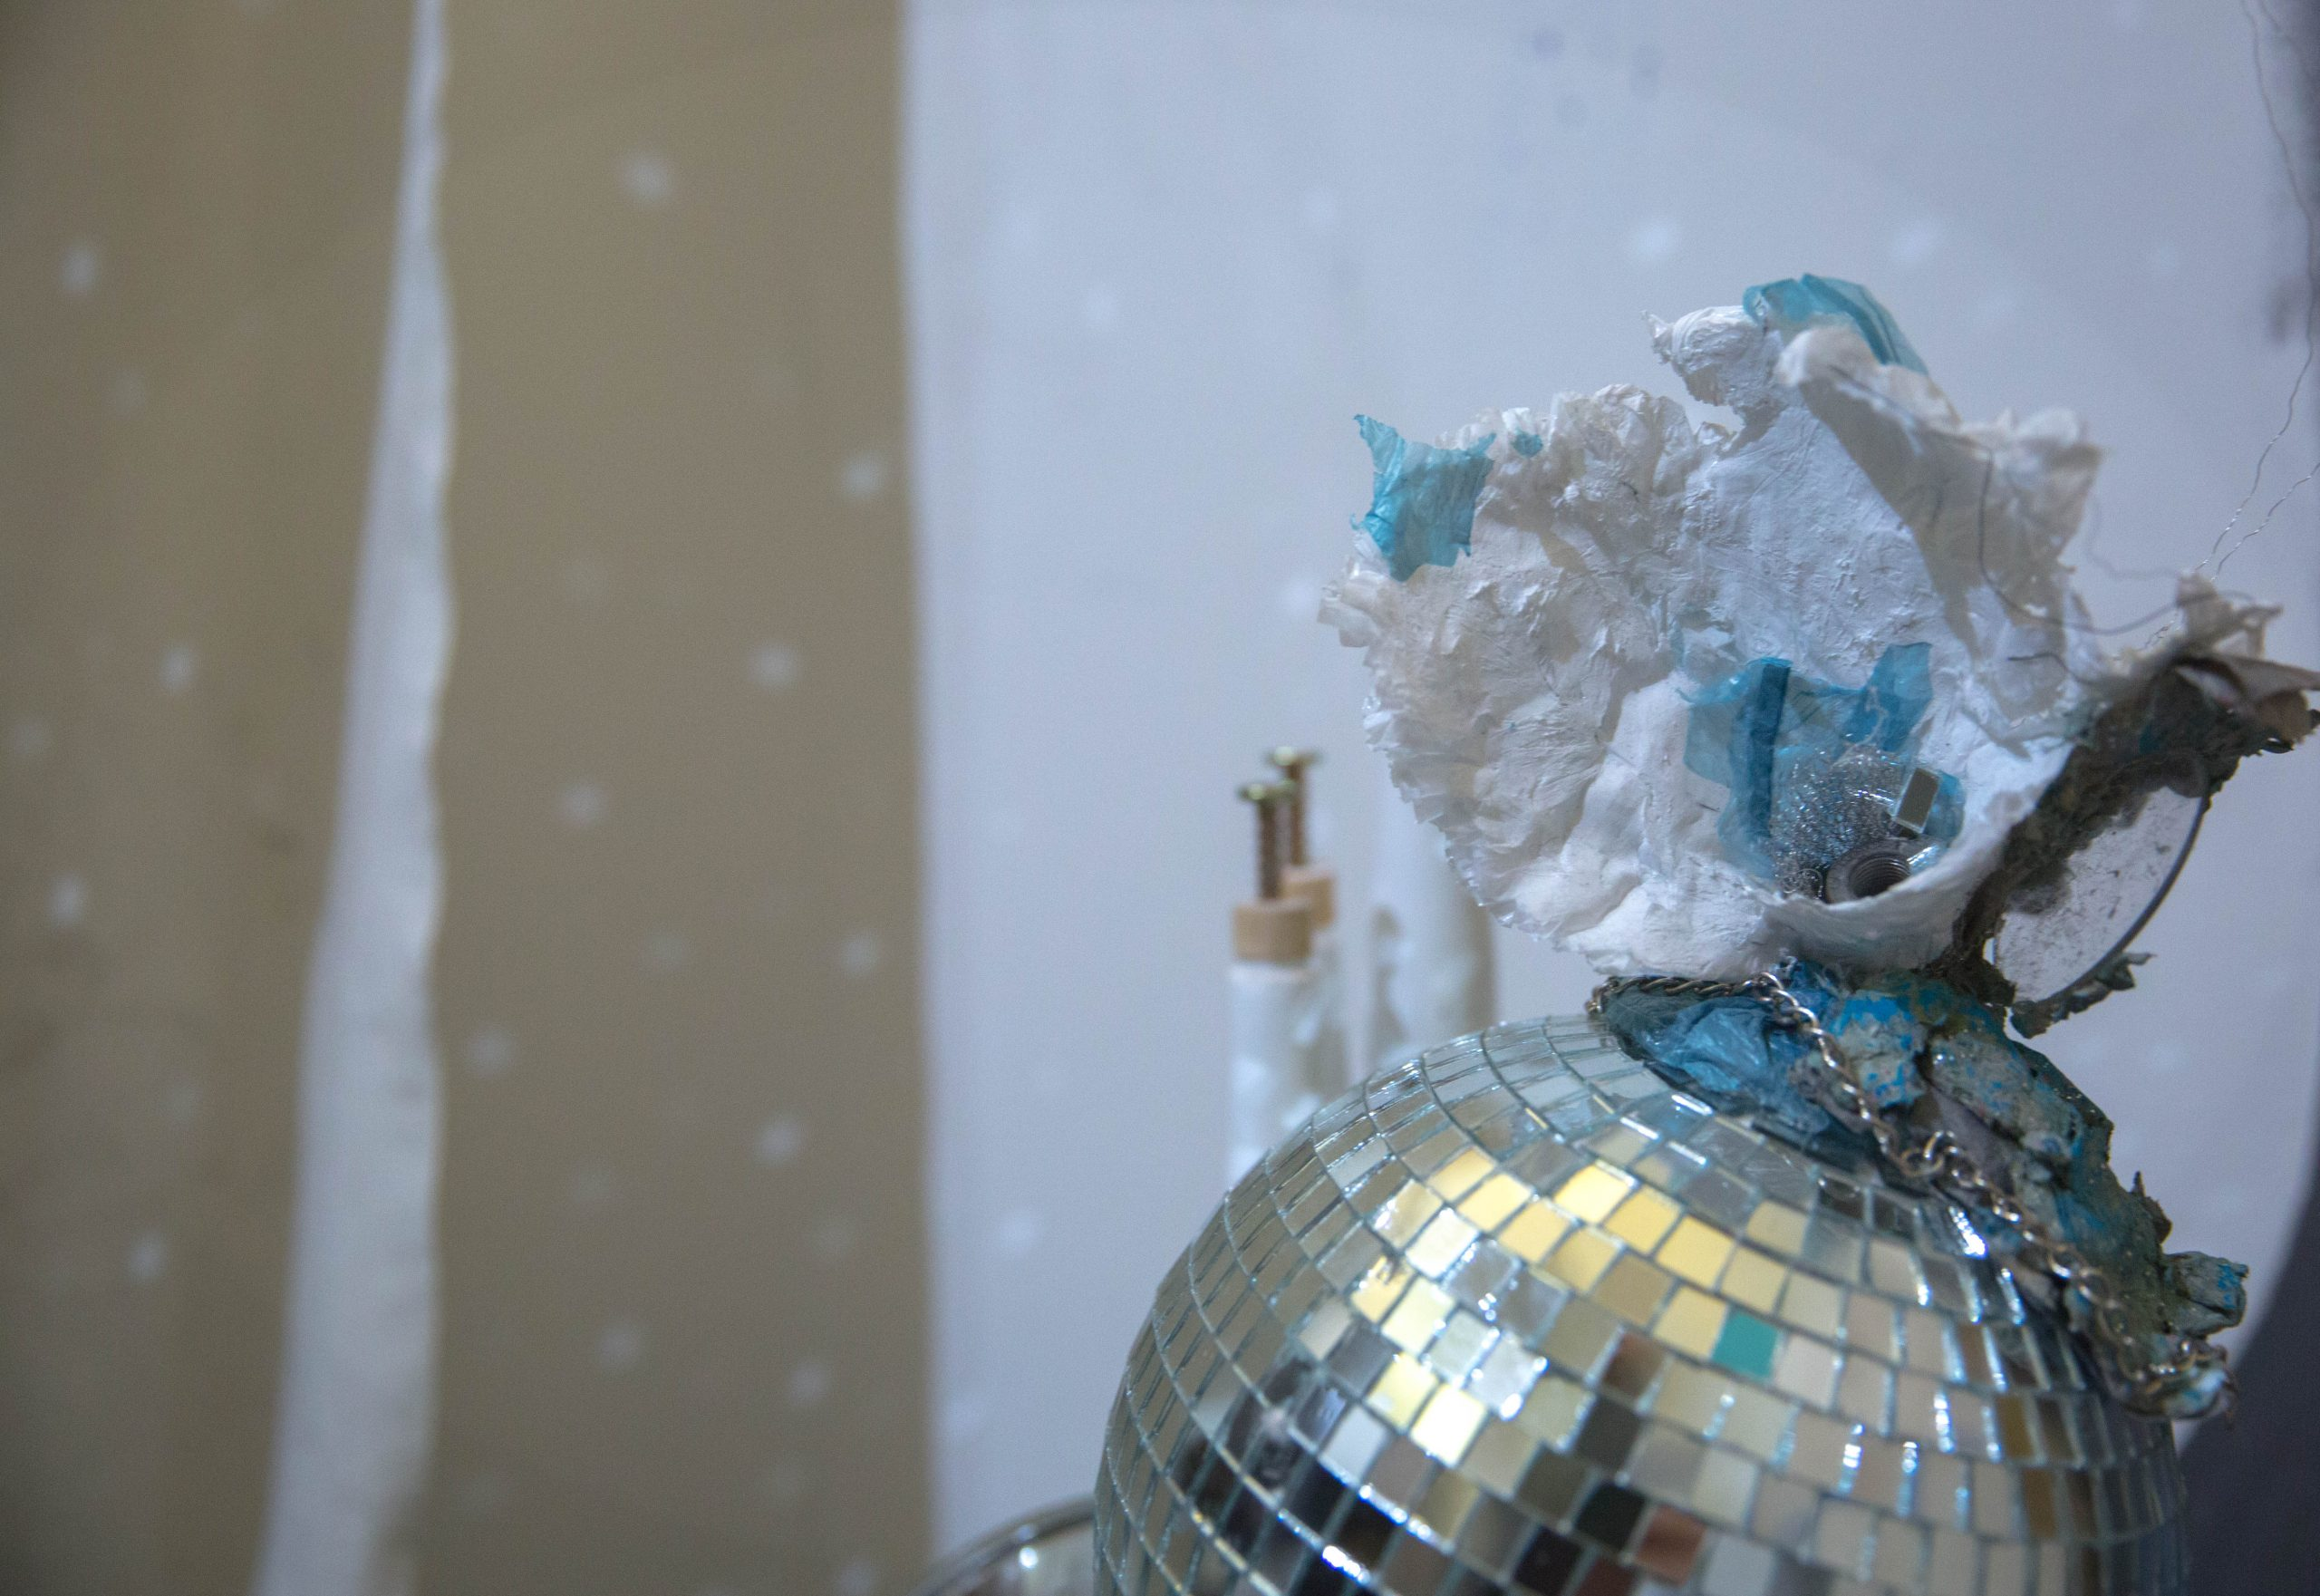 """Globus Purgamentum, 2016, Disco ball, paper pulp, lens from glasses, chain, plastic bags, wire, approx. 12"""" in height and 22.5"""" in diameter."""